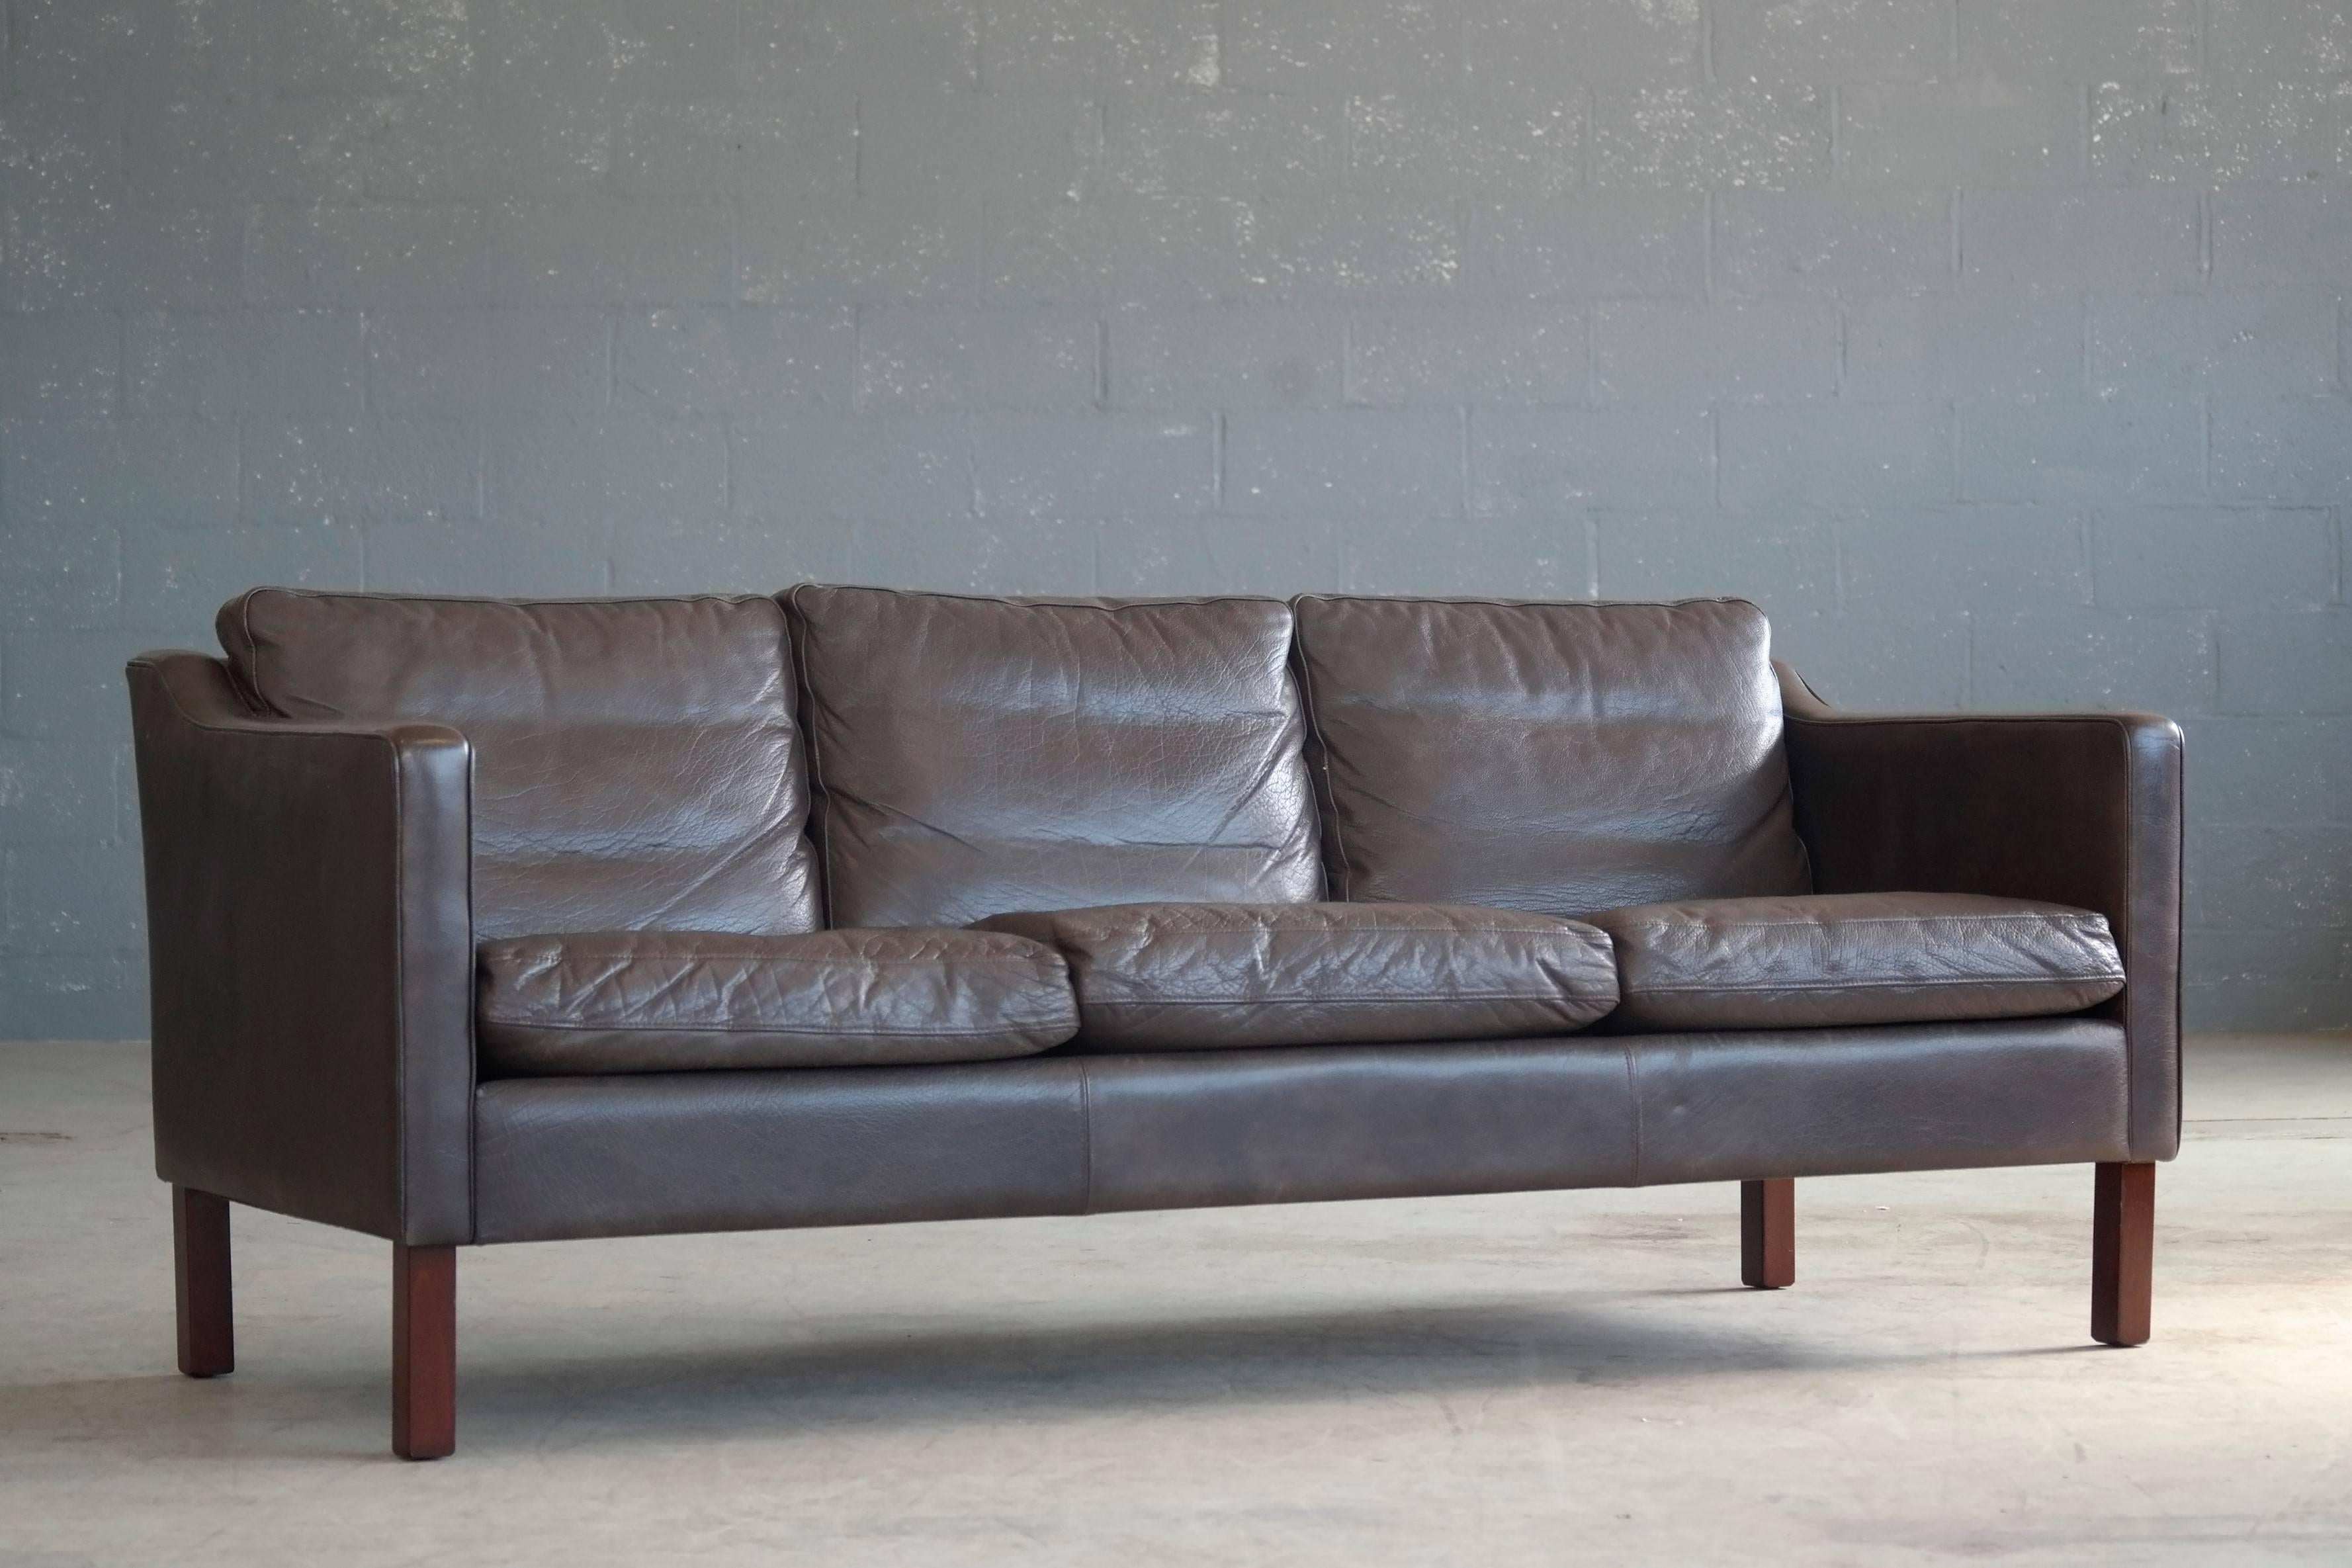 Scandinavian Modern Børge Mogensen Style Sofa In Dark Espresso Down Filled  Leather By Mogens Hansen For